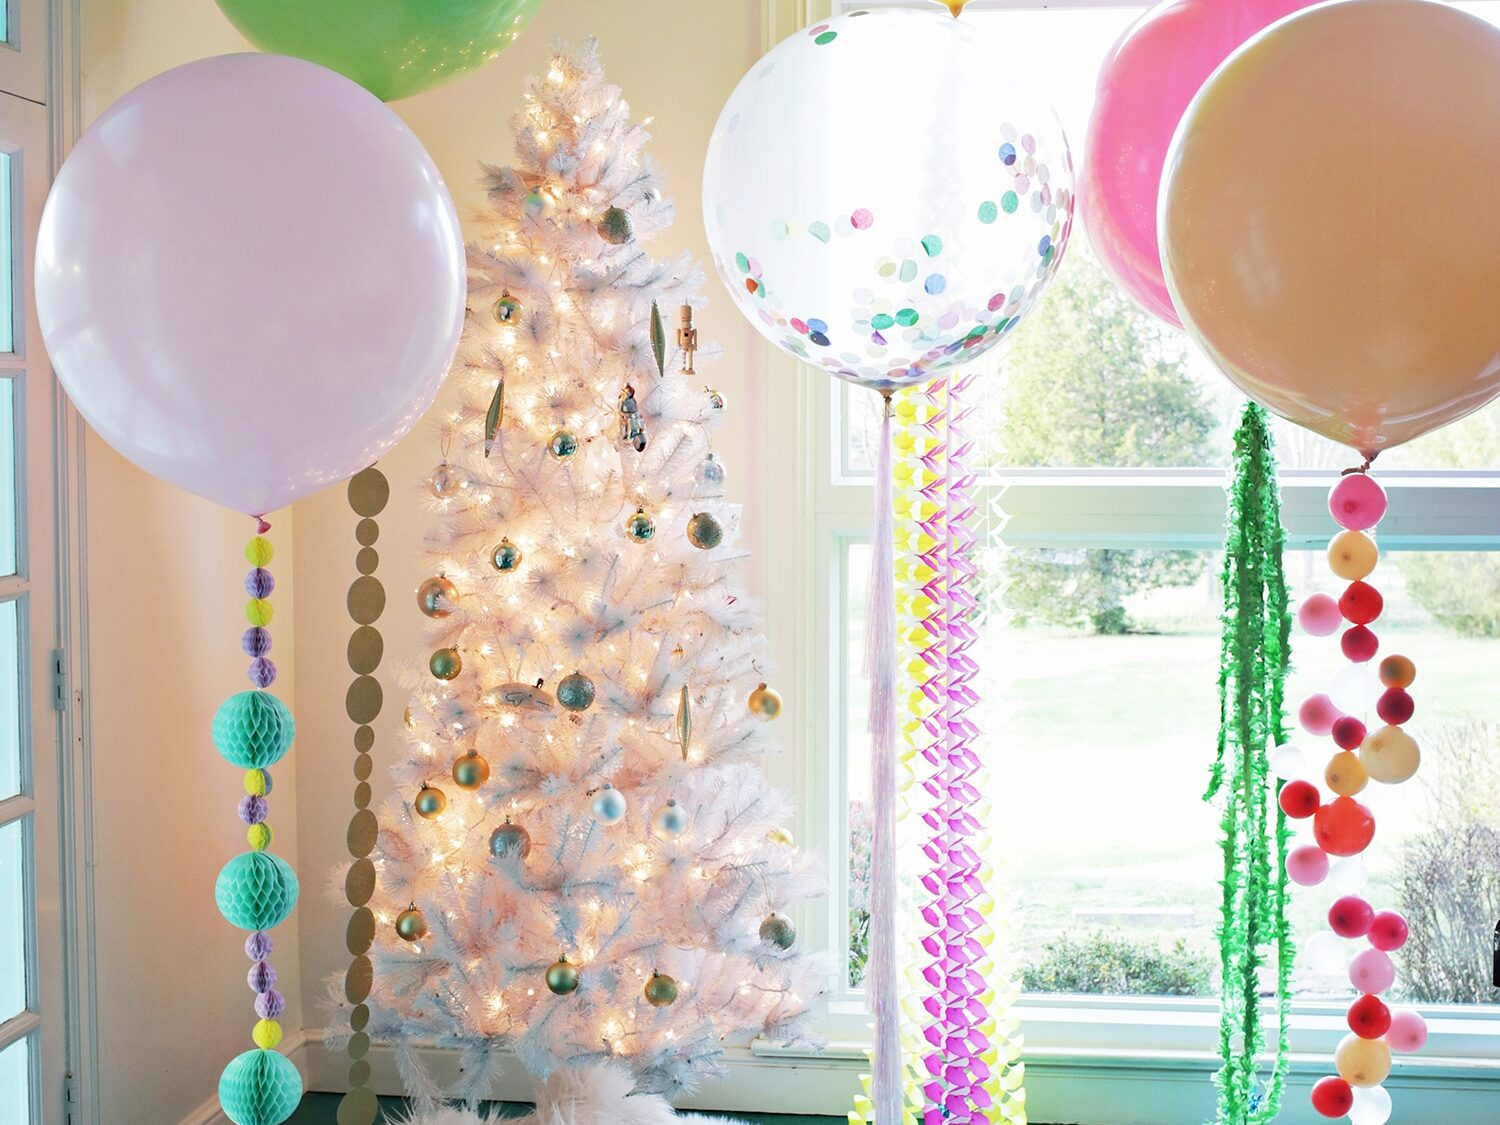 Lots of different ideas to make balloons tails more fun and unique for birthday party decorations | The Dating Divas